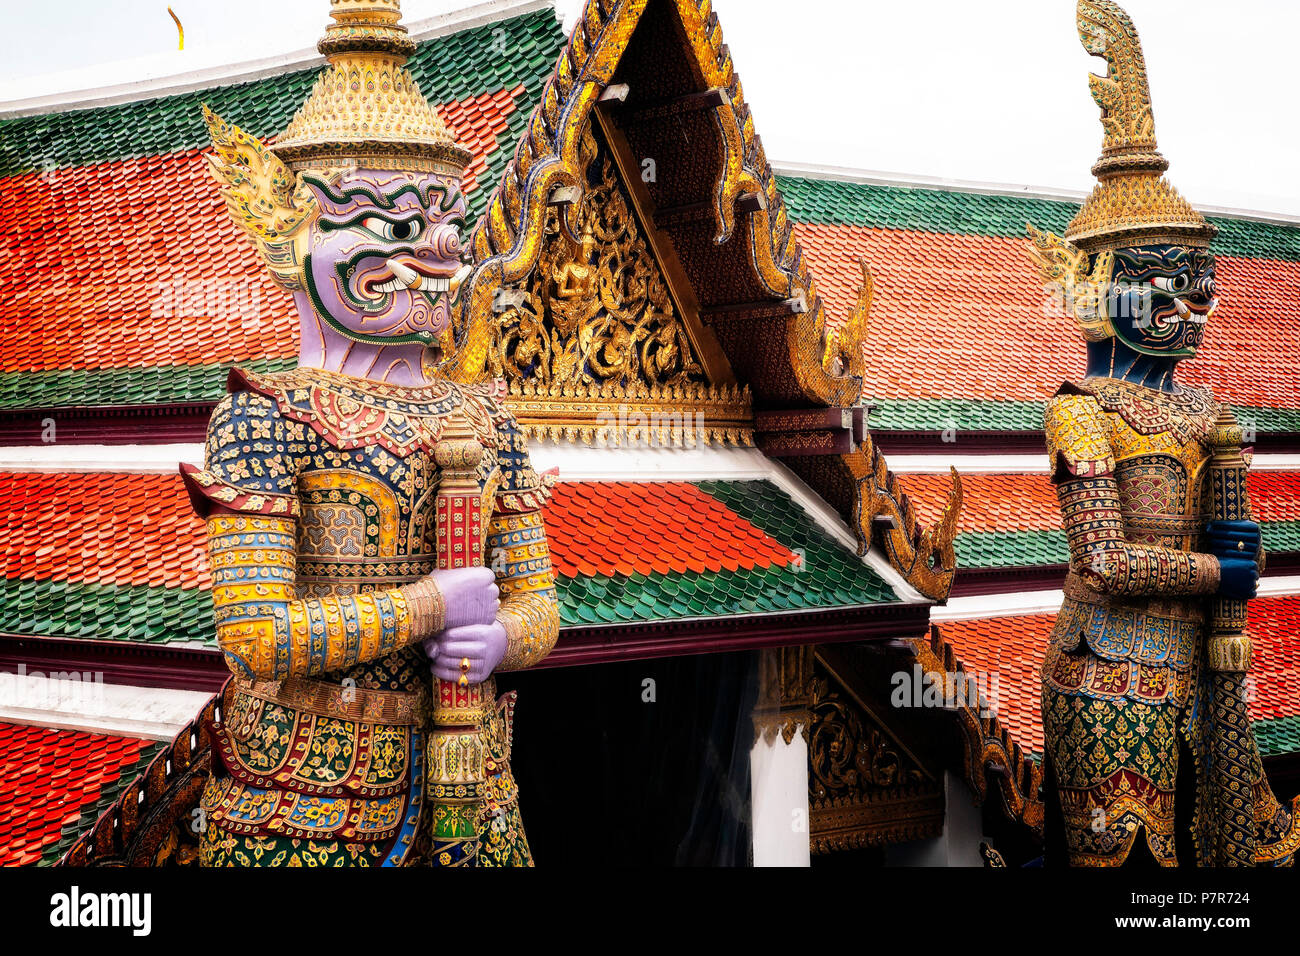 Statues scare away demons at the Grand Palace complex.  Bangkok, Thailand. - Stock Image